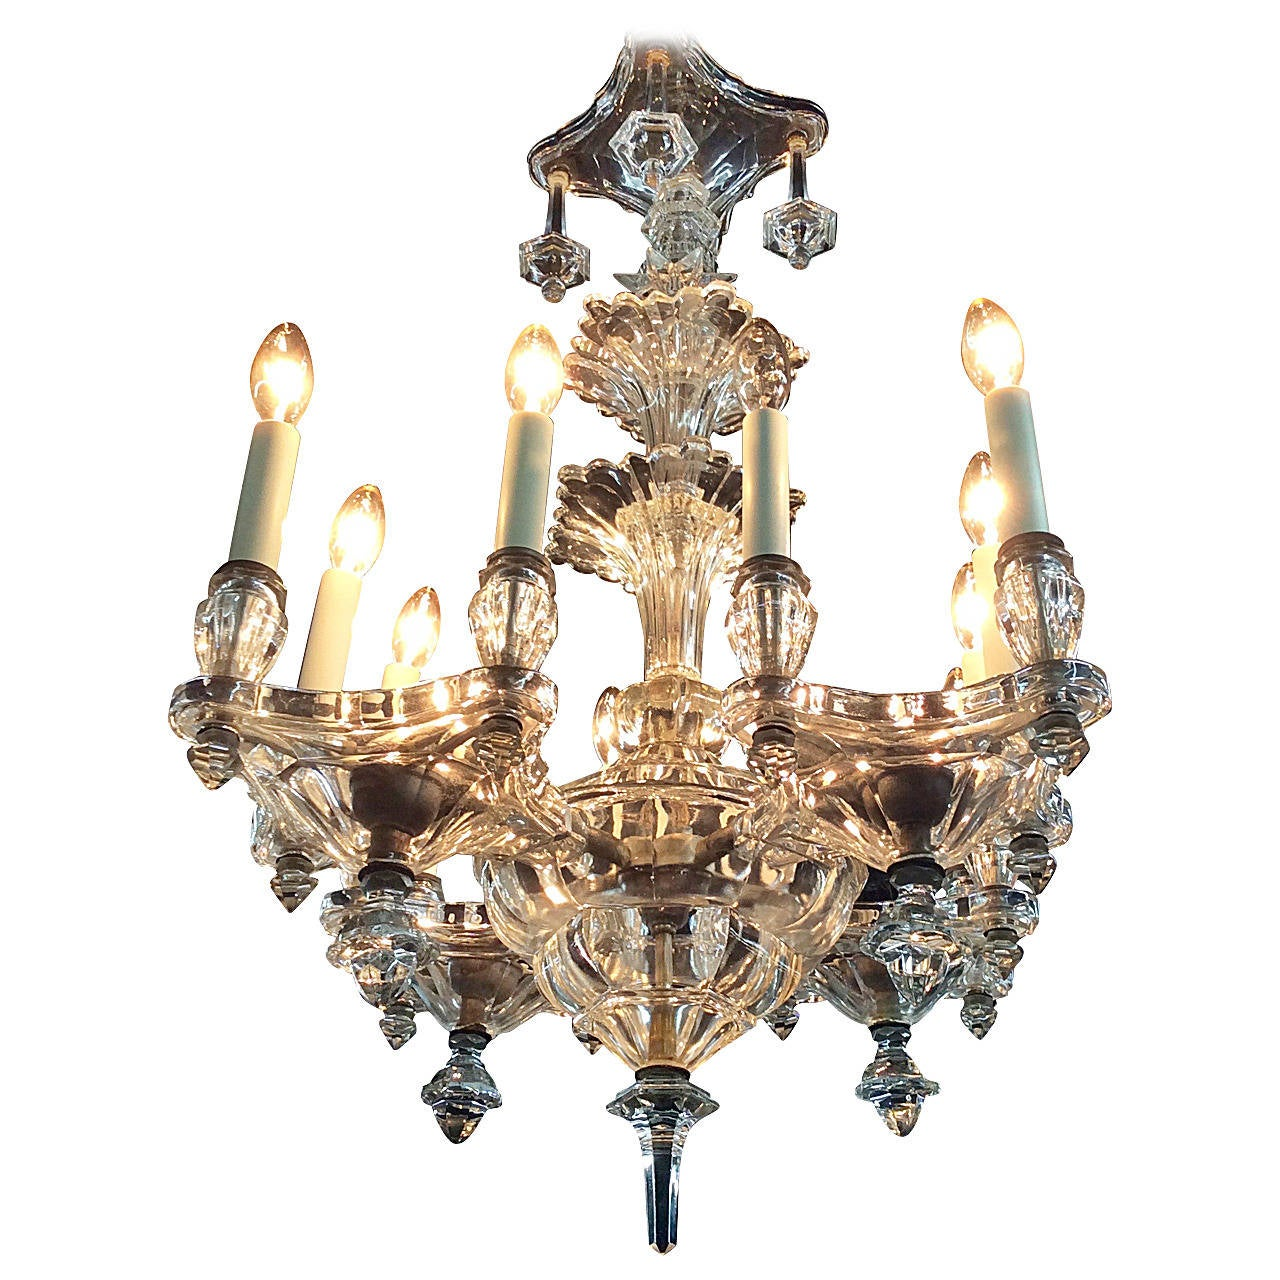 Flush mount italian venetian chandelier circa 1940 for sale at 1stdibs flush mount italian venetian chandelier circa 1940 for sale aloadofball Images